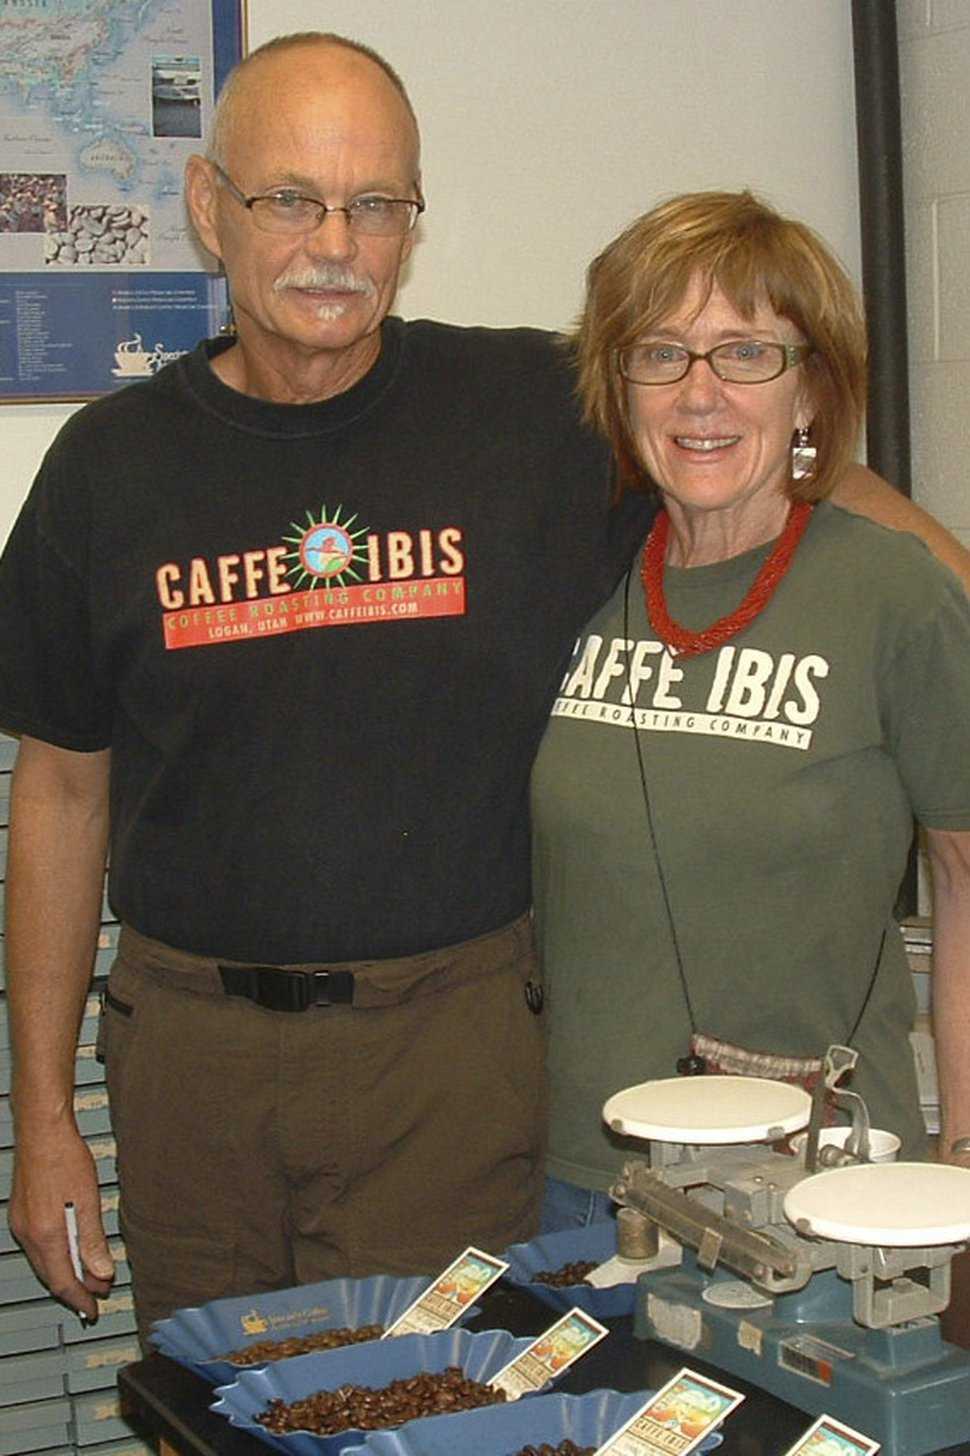 (Courtesy of Arrin Newton Brunson) Caffe Ibis Roastmaster Randy Wirth and CEO Sally Sears are passionate about the flavor of their coffee, as well as its impact on the environment. With each triple-certified cup, the couple, married for 35 years, serves environmental stewardship and social justice by adhering to the industry's highest standards.